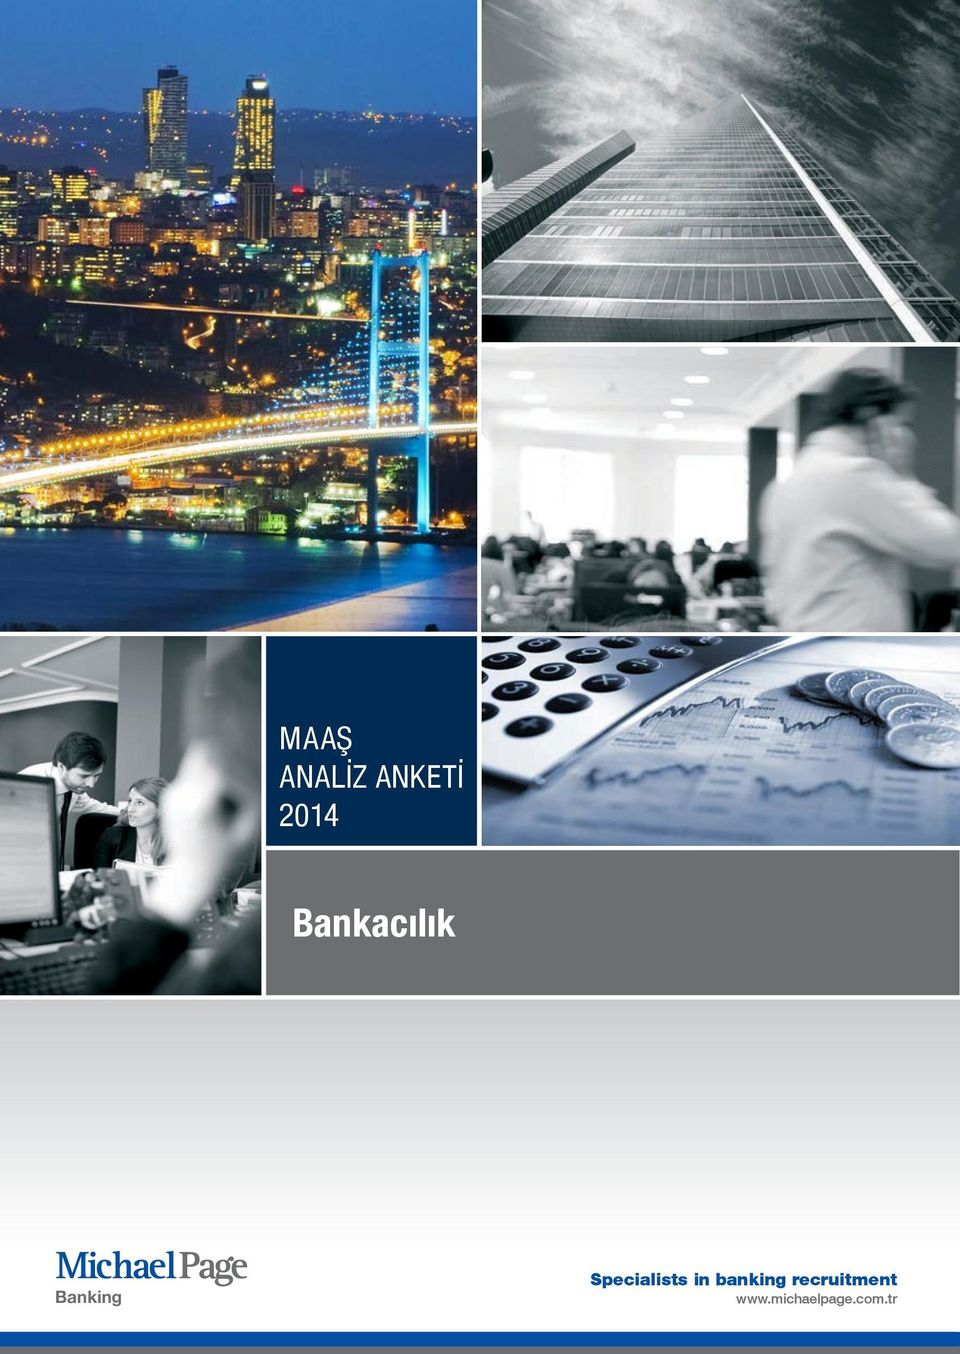 Specialists in banking